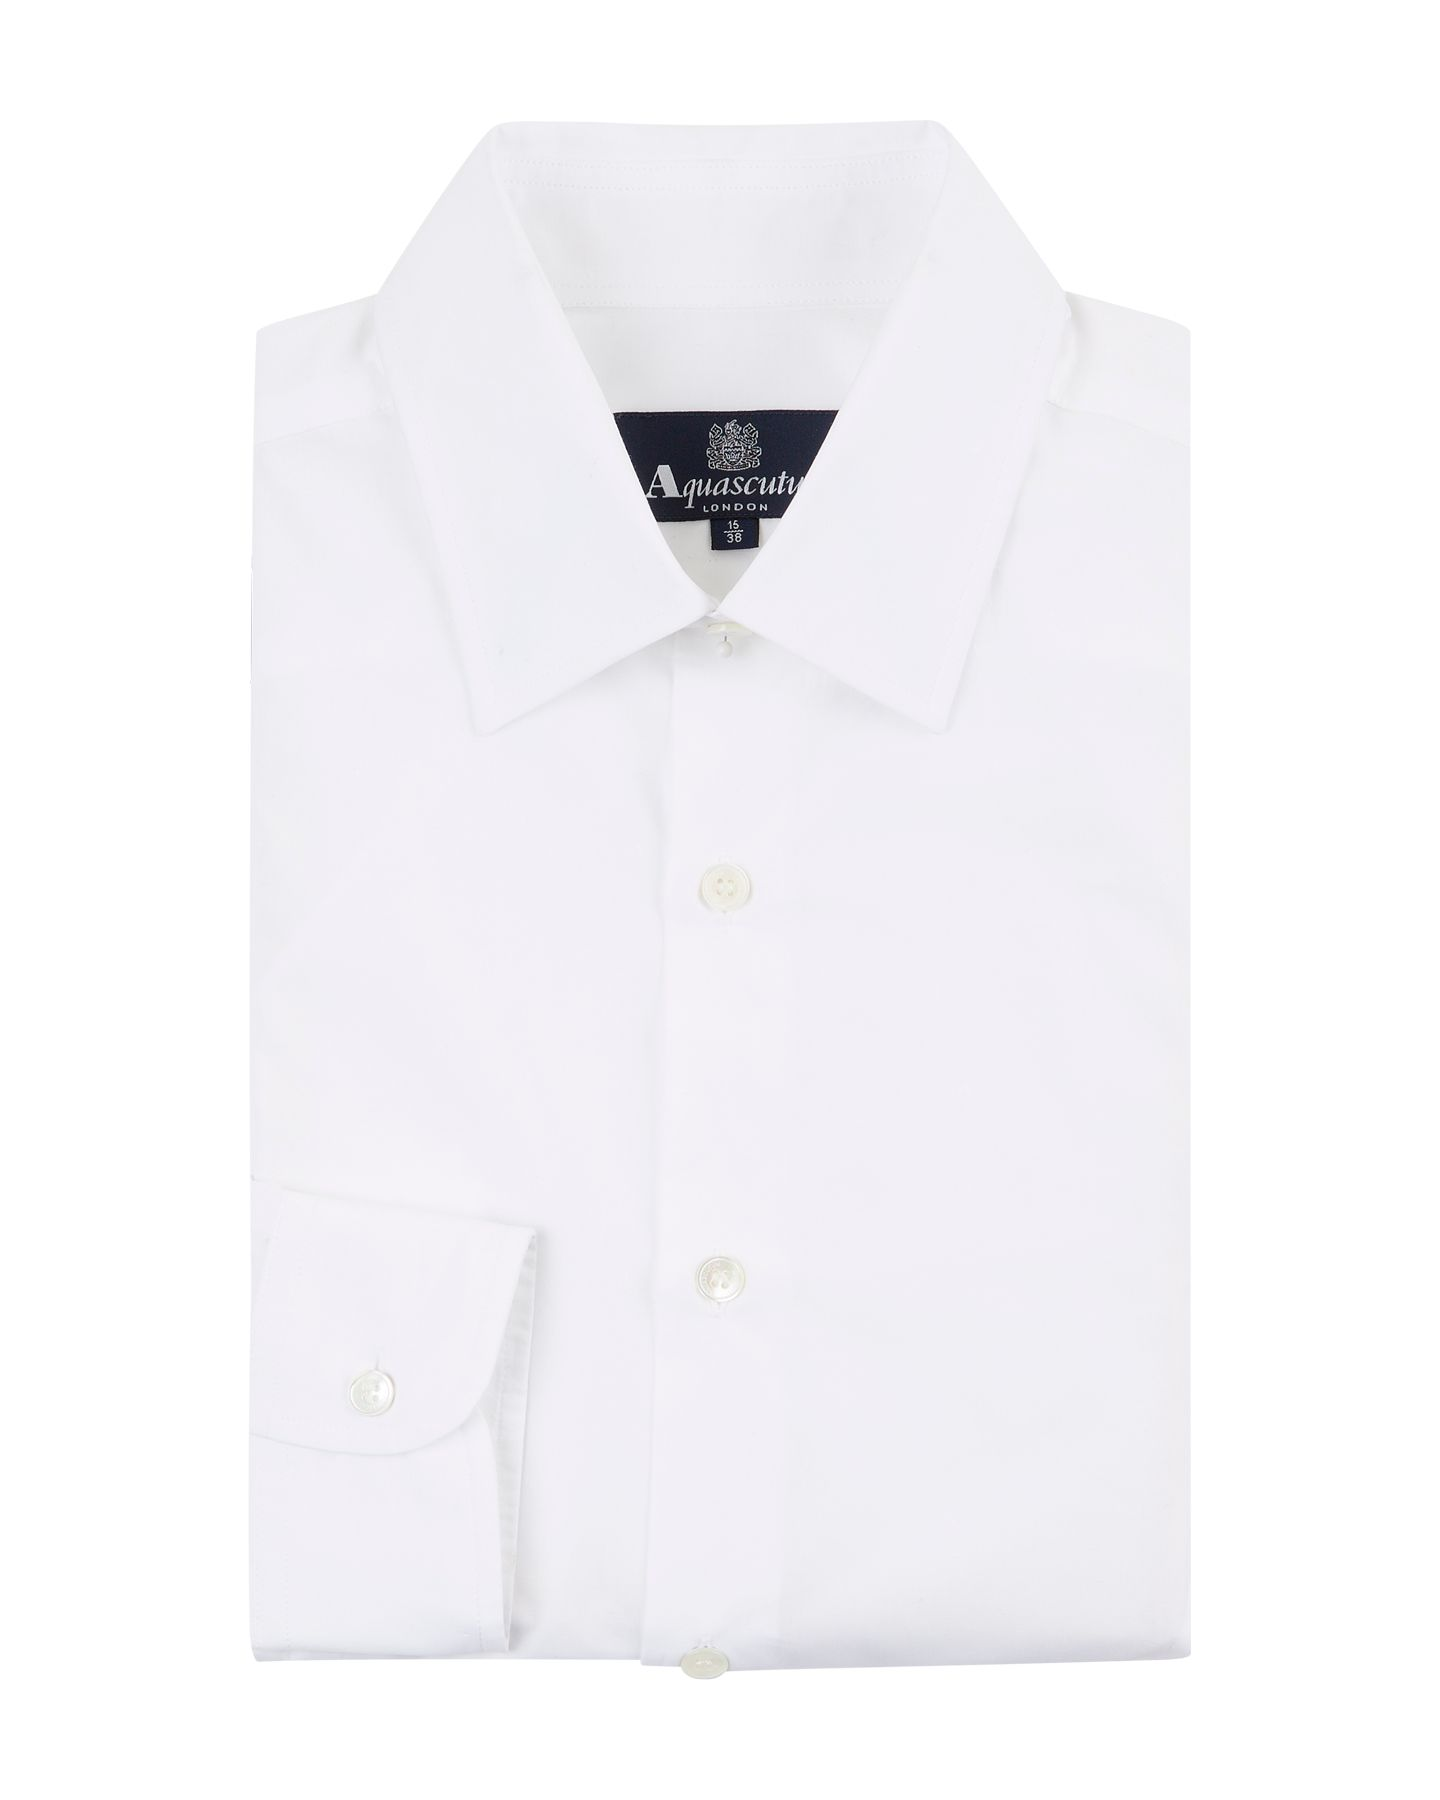 Stephen oxford long sleeve shirt